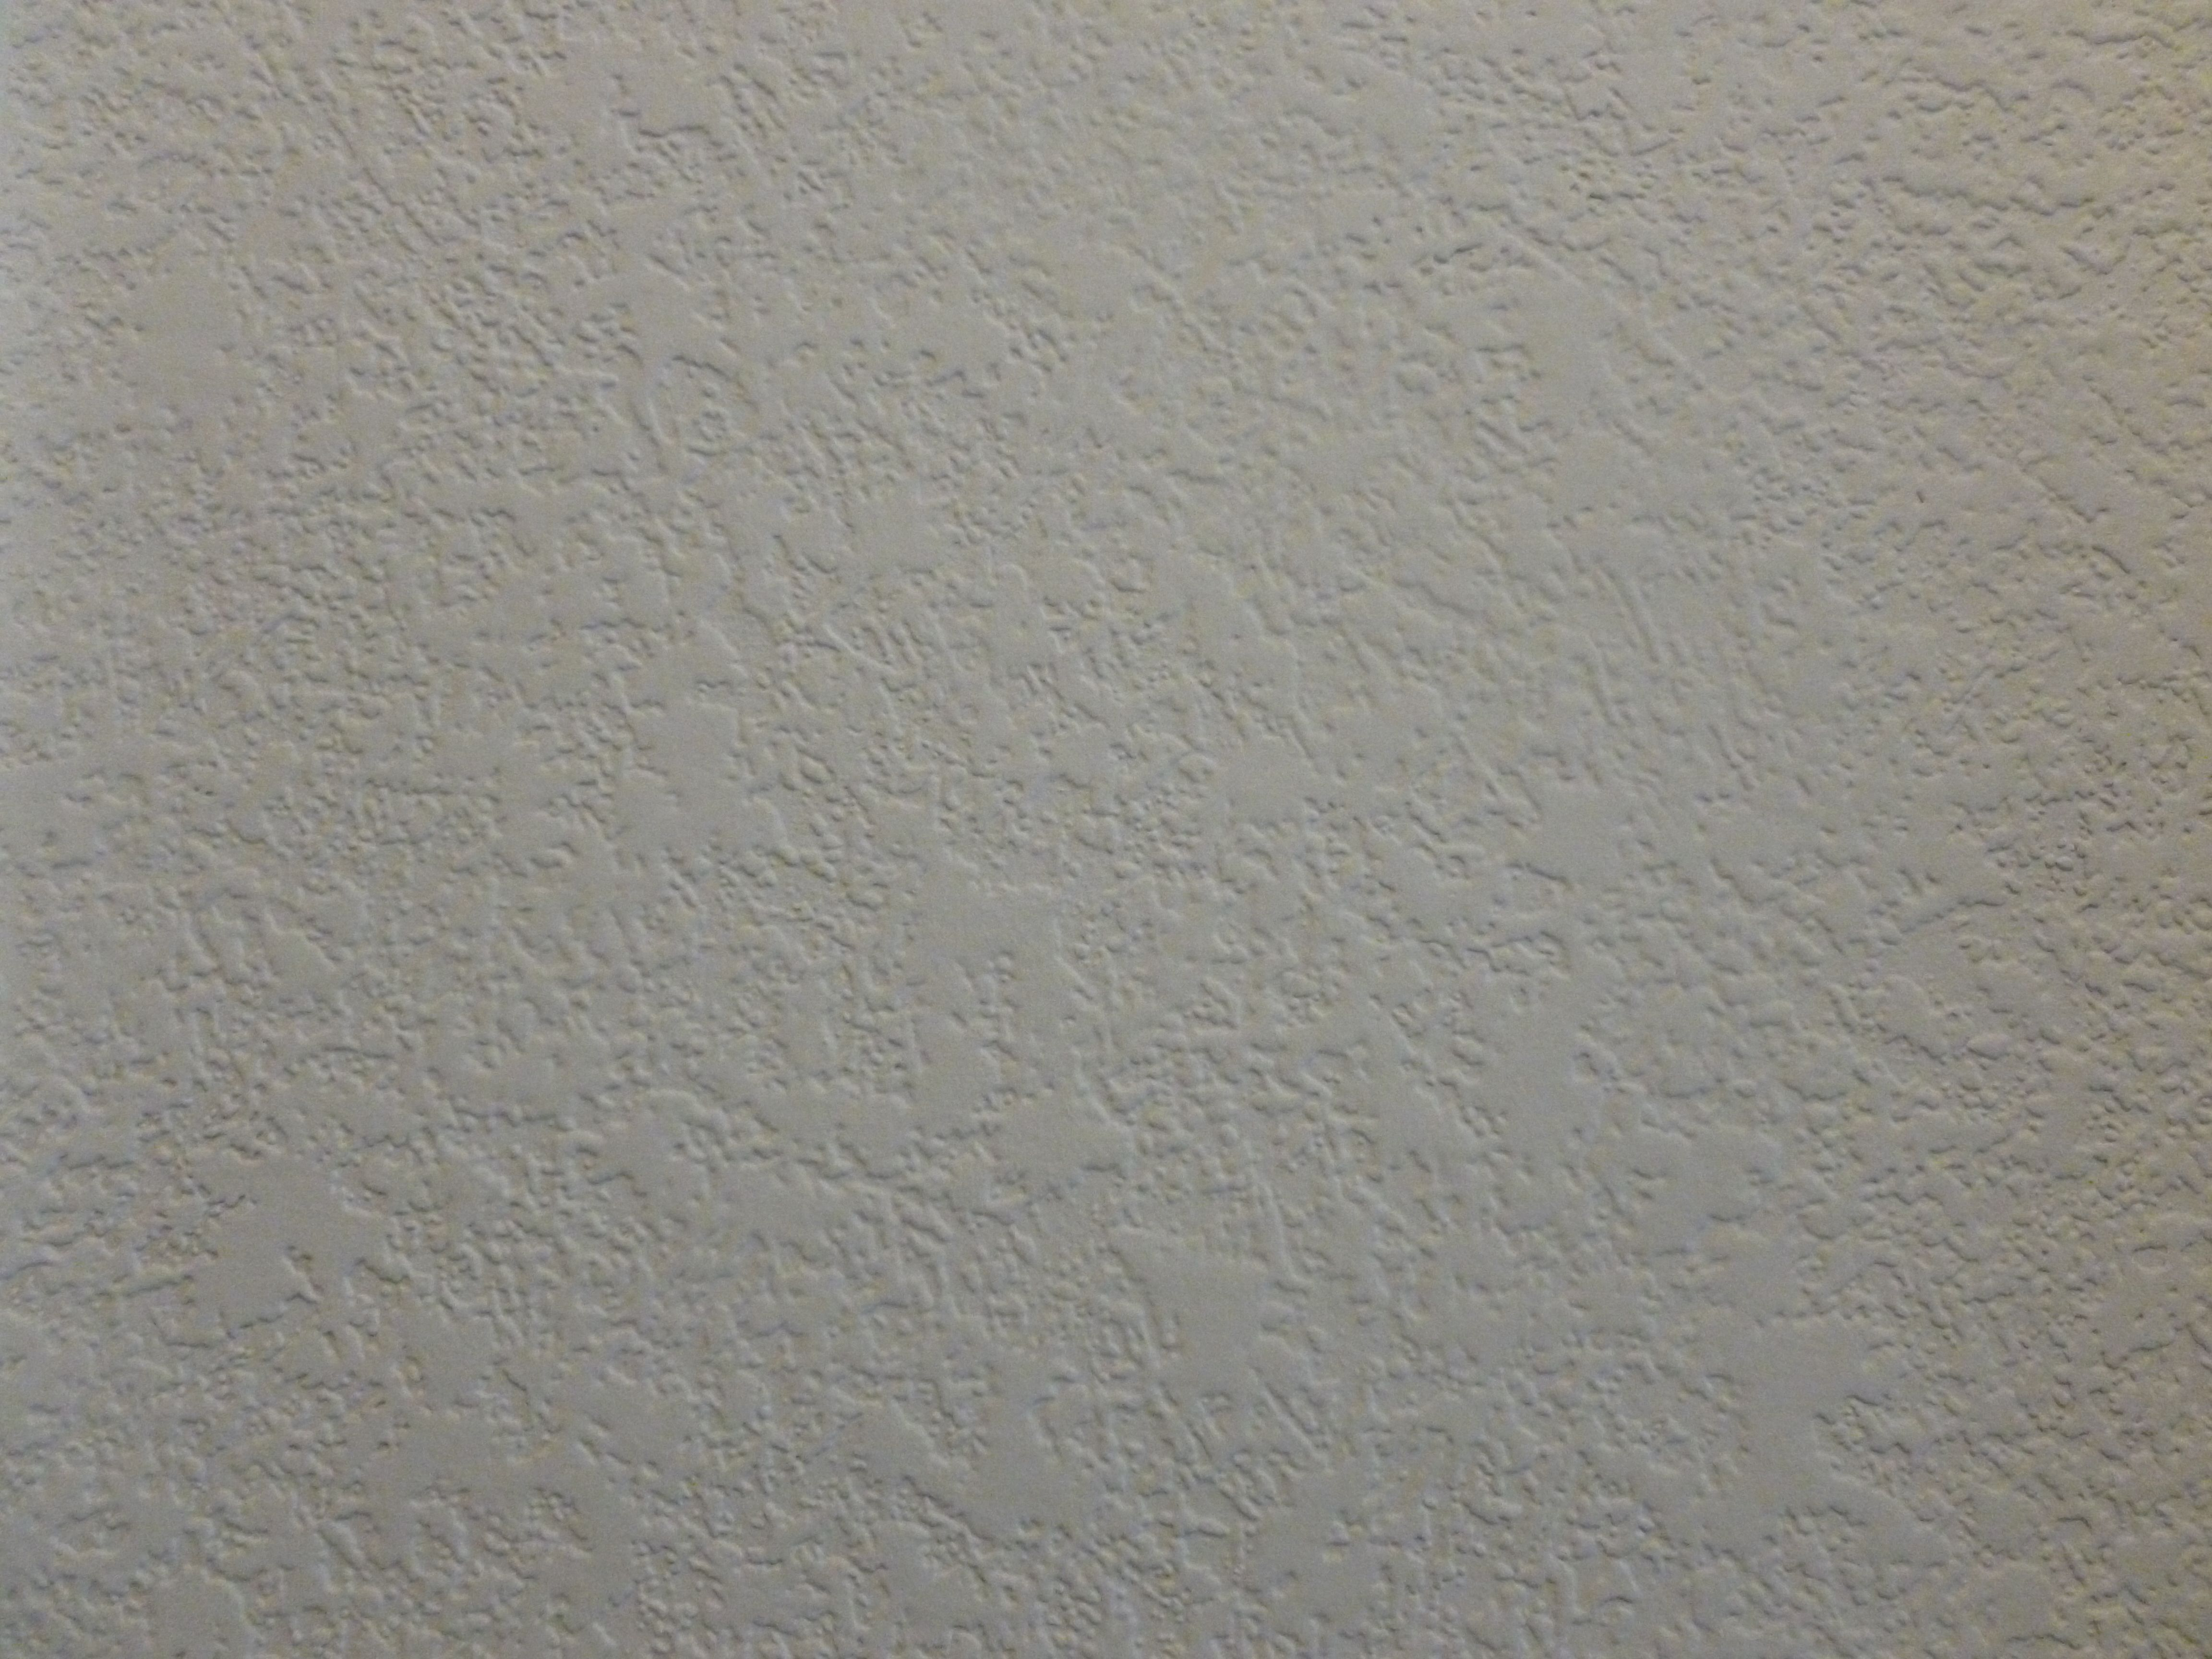 Close up of textured wall paper that you paint over to cover damaged